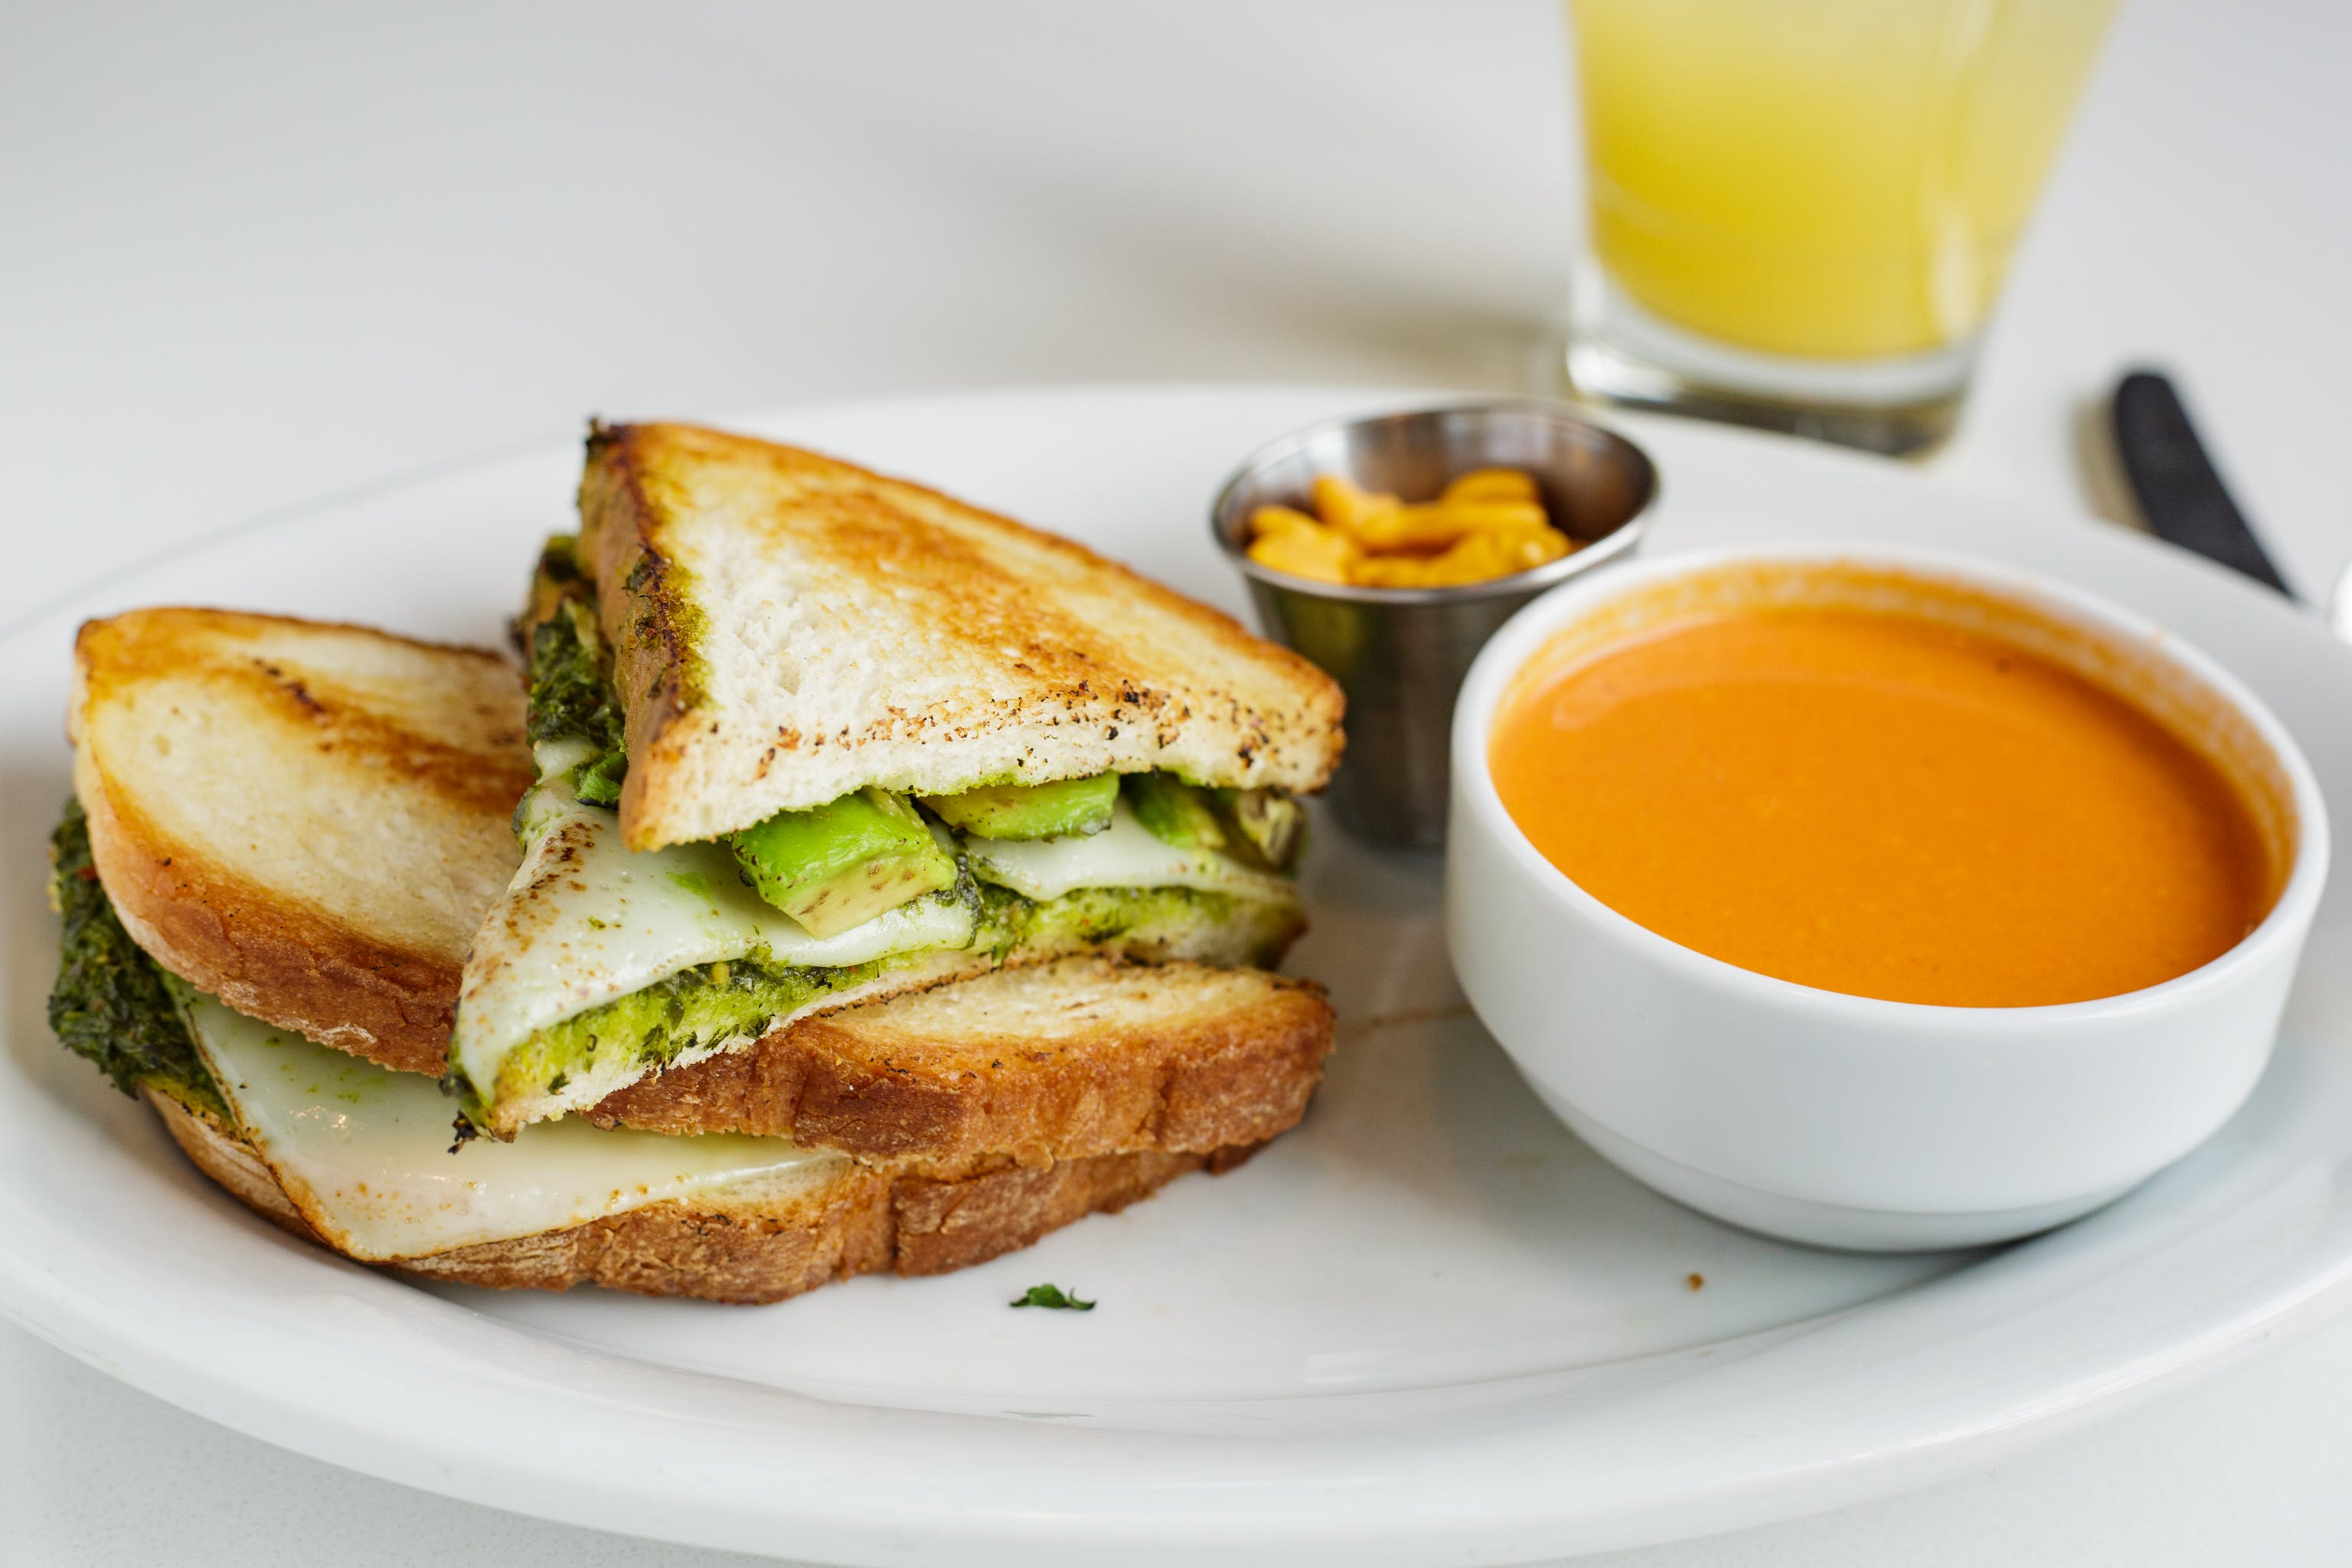 Green Goddess Grilled Cheese from Bassett Street Brunch Club in Madison, WI